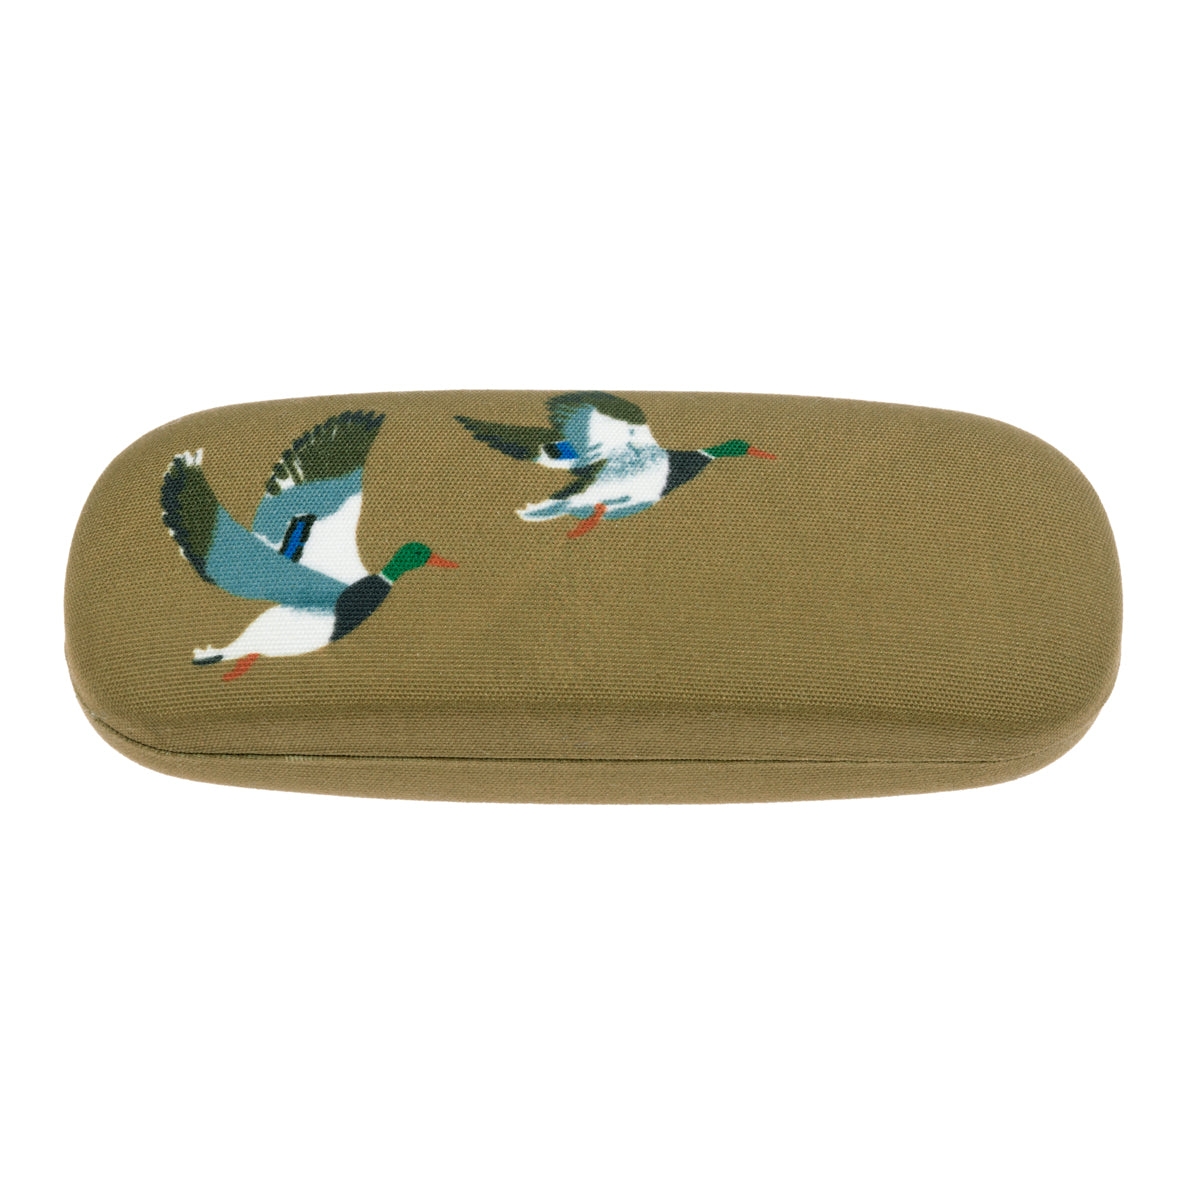 Ducks Glasses Case by Sophie Allport